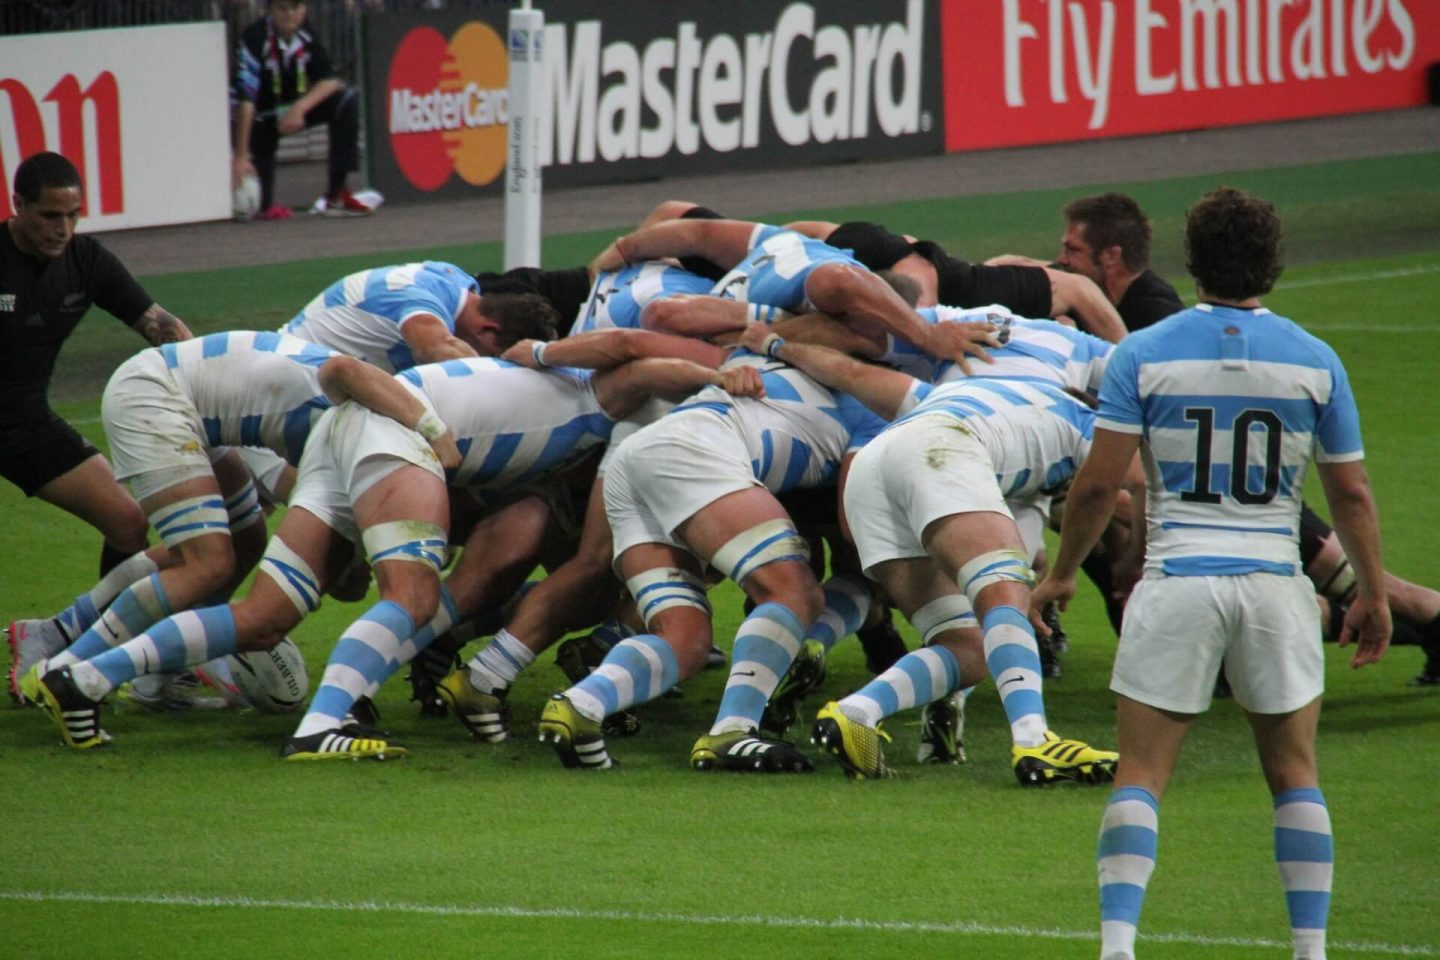 Rugby trivia questions and answers 2020 - Argentina